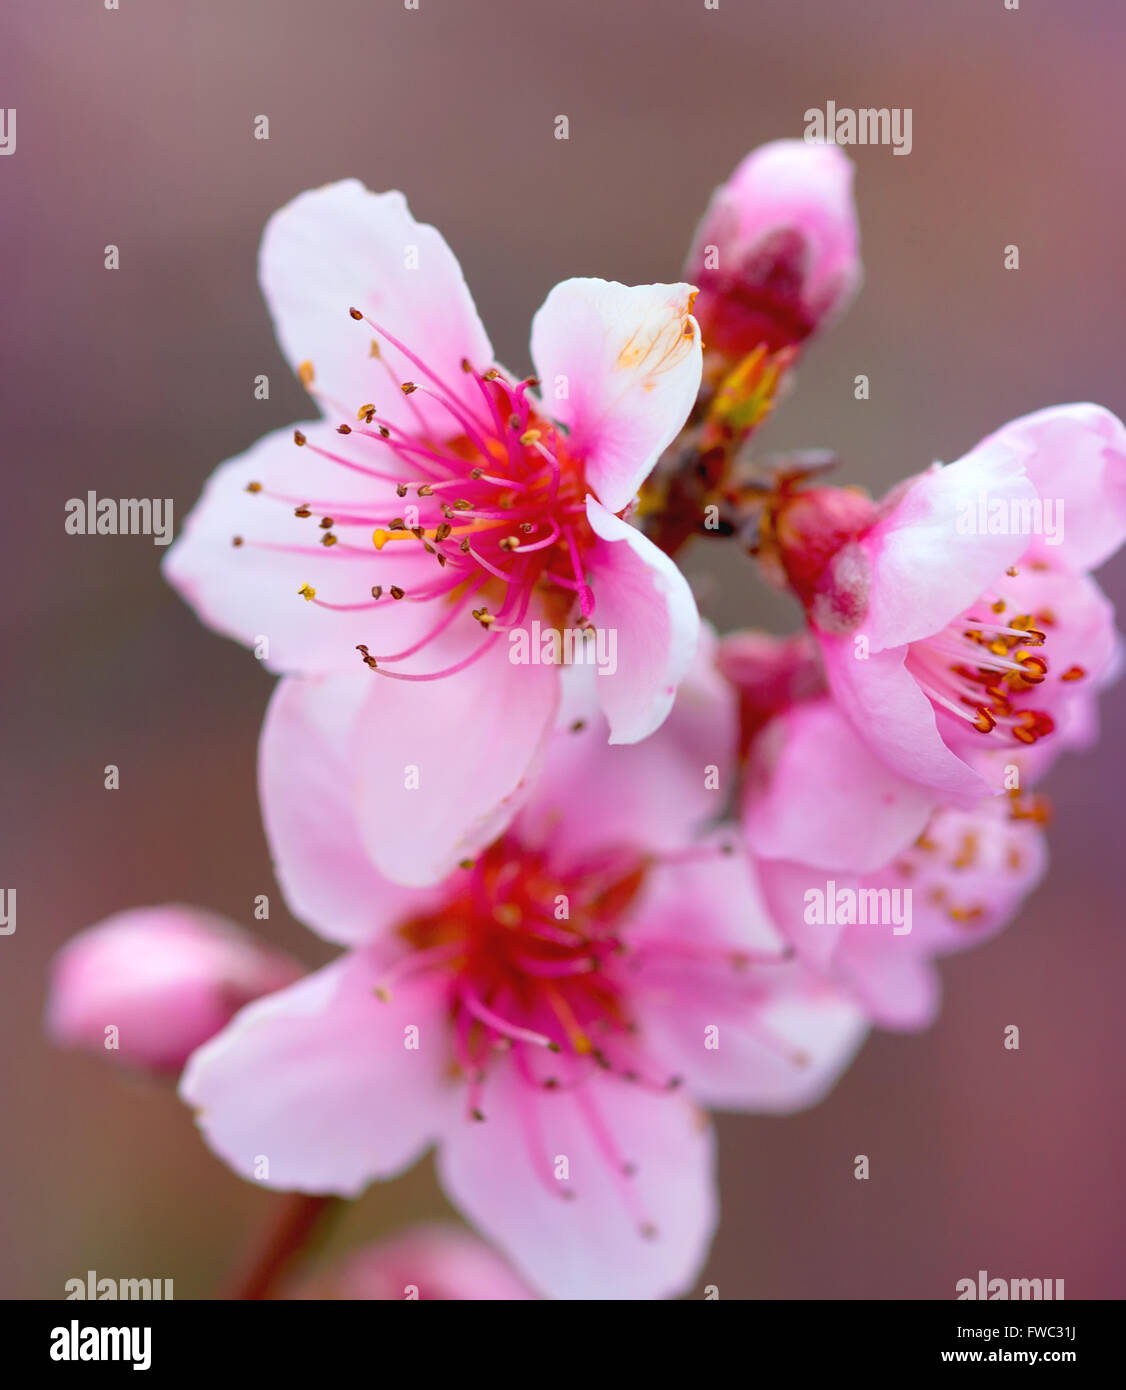 Blurred Background Branches With Beautiful Pink Flowers Peach